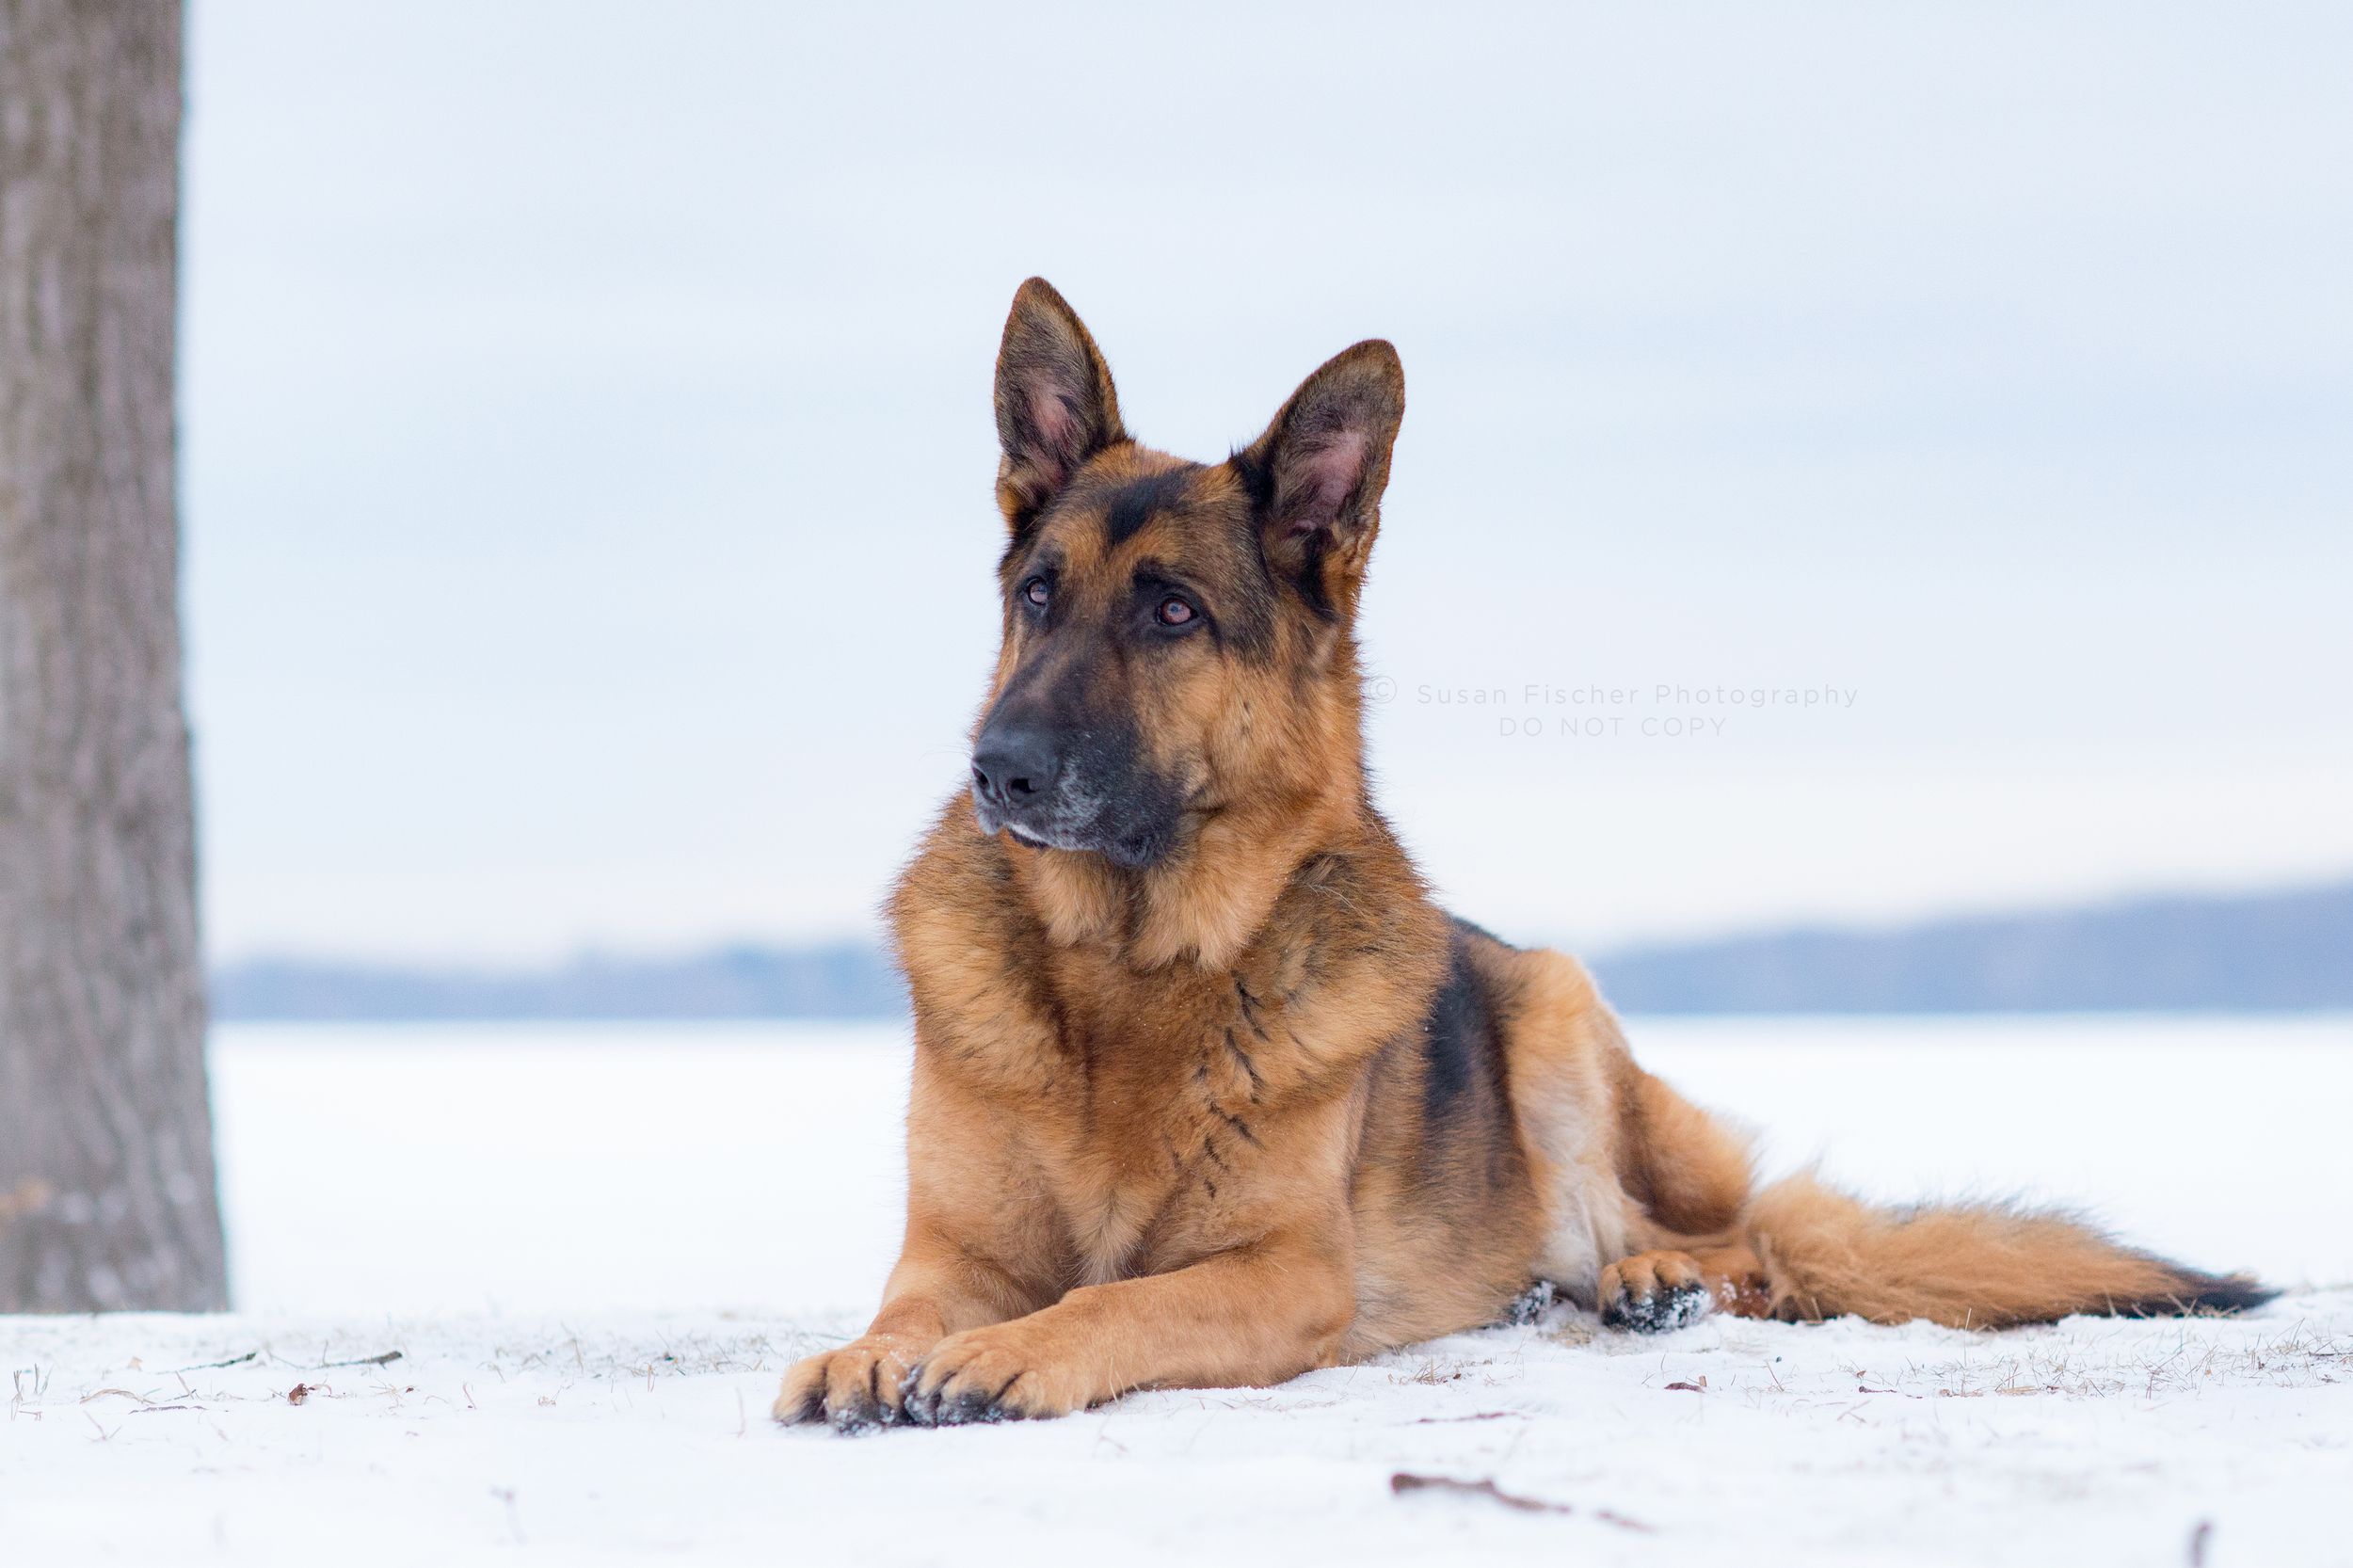 dog, German shepherd, dog in snow, lying down